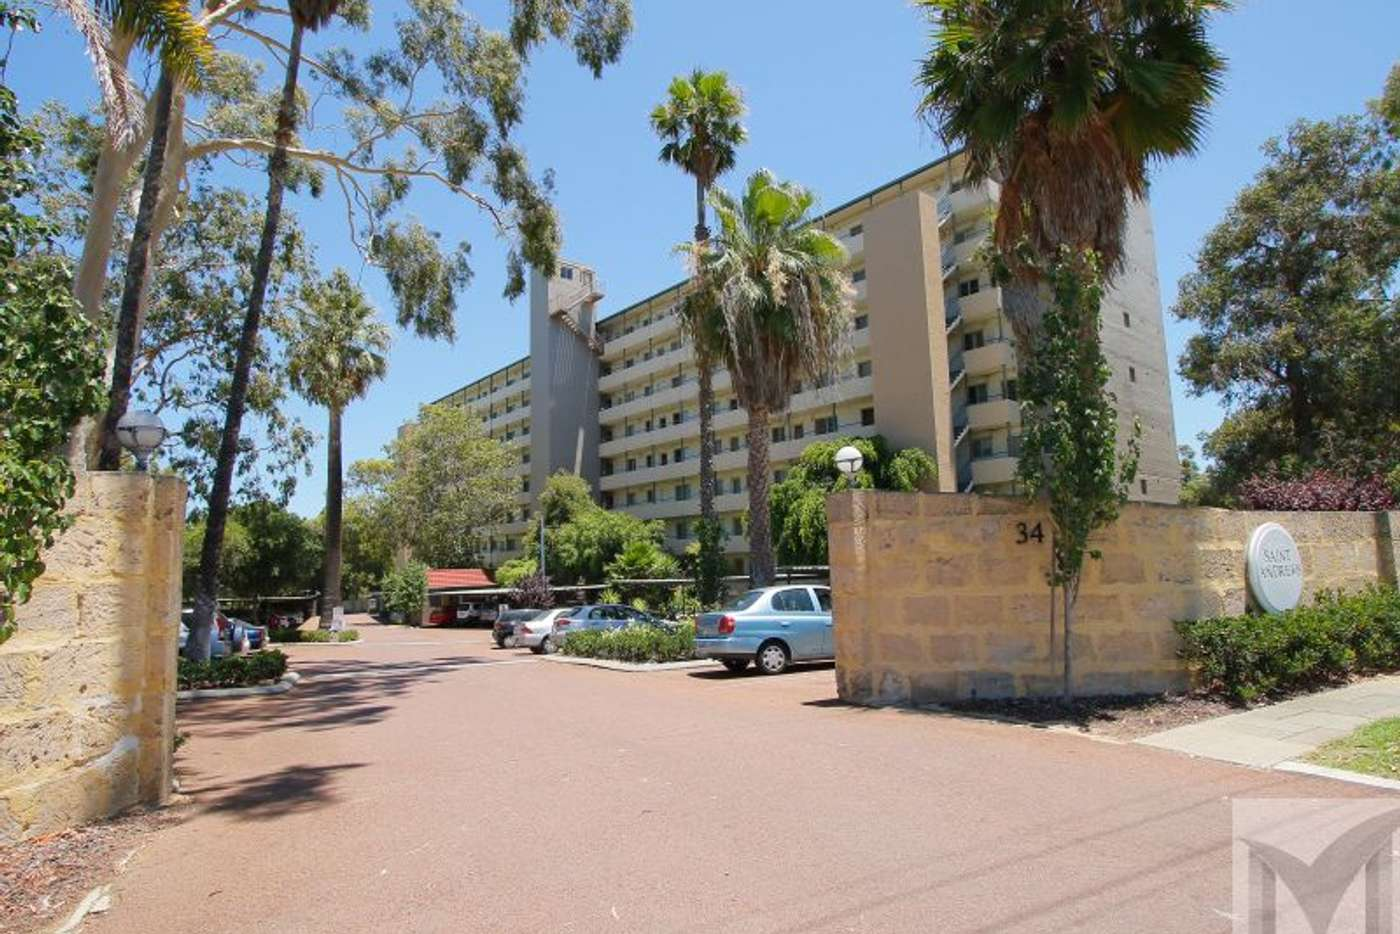 Main view of Homely apartment listing, 31/34 Davies Road, Claremont WA 6010